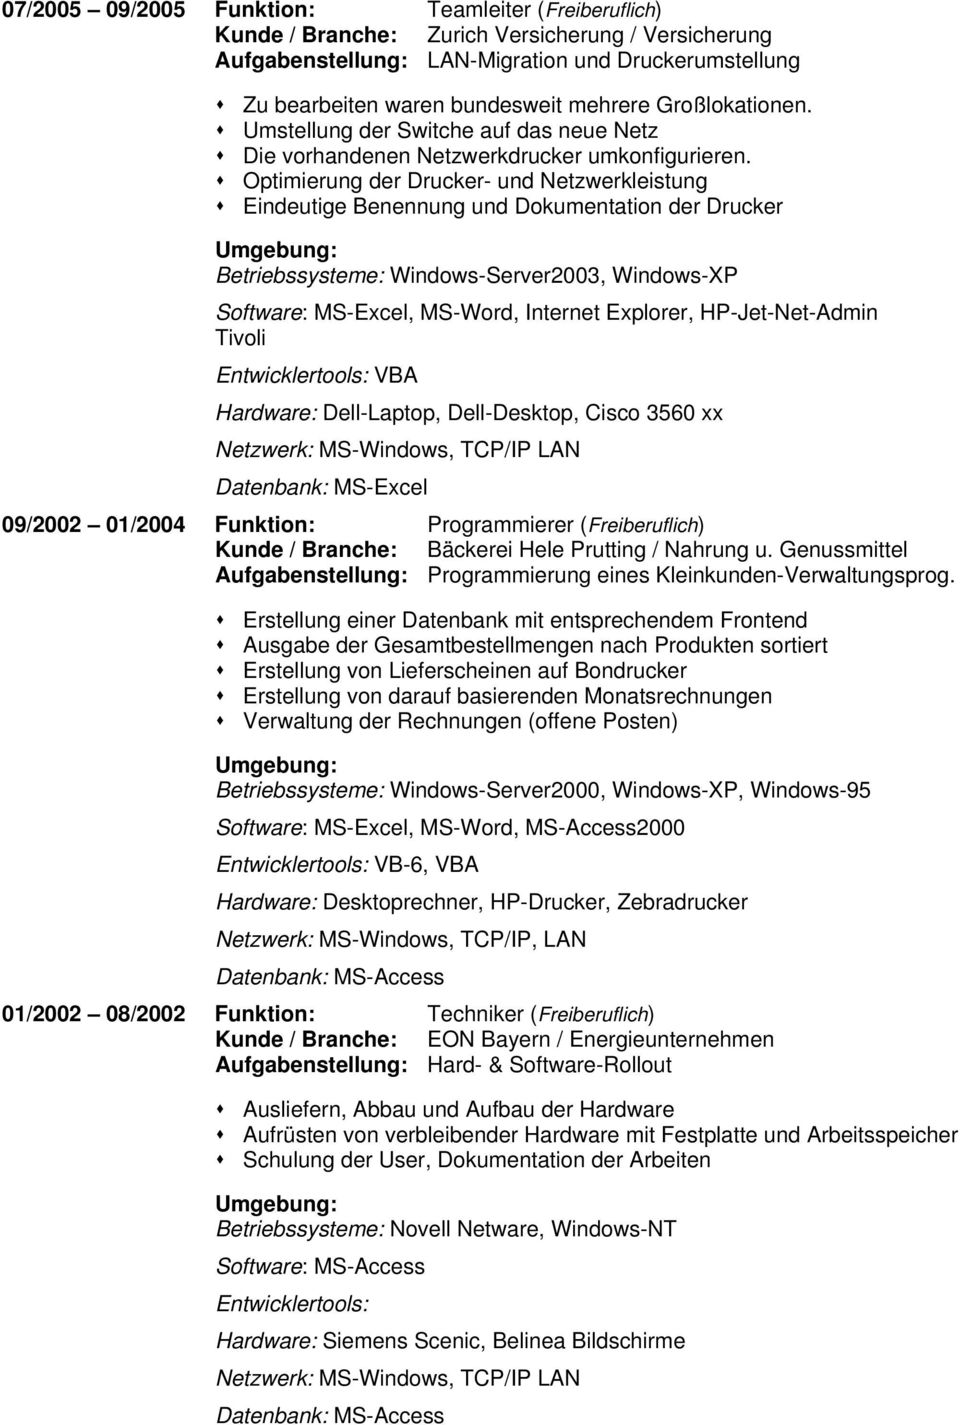 Charmant Cisco Lebenslauf Galerie - Entry Level Resume Vorlagen ...